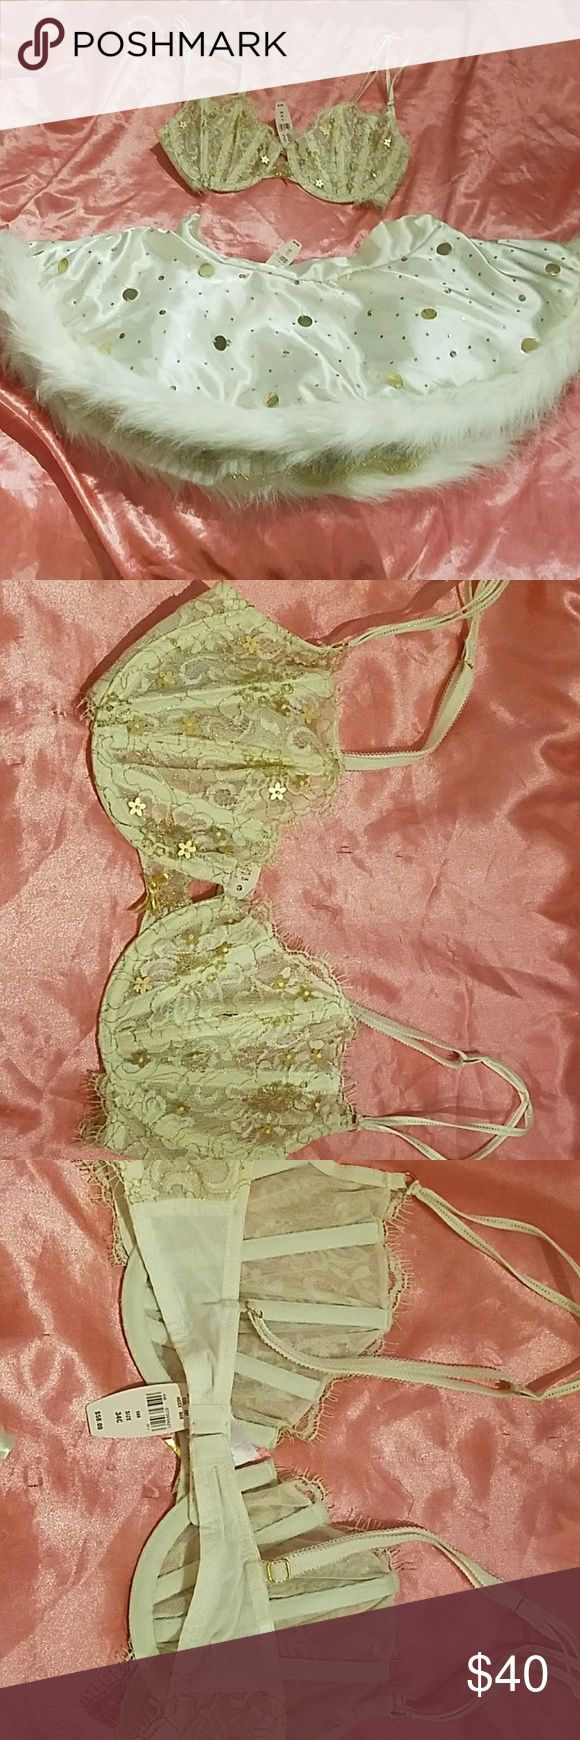 NWT Victoria Secret Lingerie Set (34C small) NWT Victoria Secret lingerie set (never worn size small) some of the sequins are loose/ bra 34C Victoria's Secret Intimates & Sleepwear Chemises & Slips